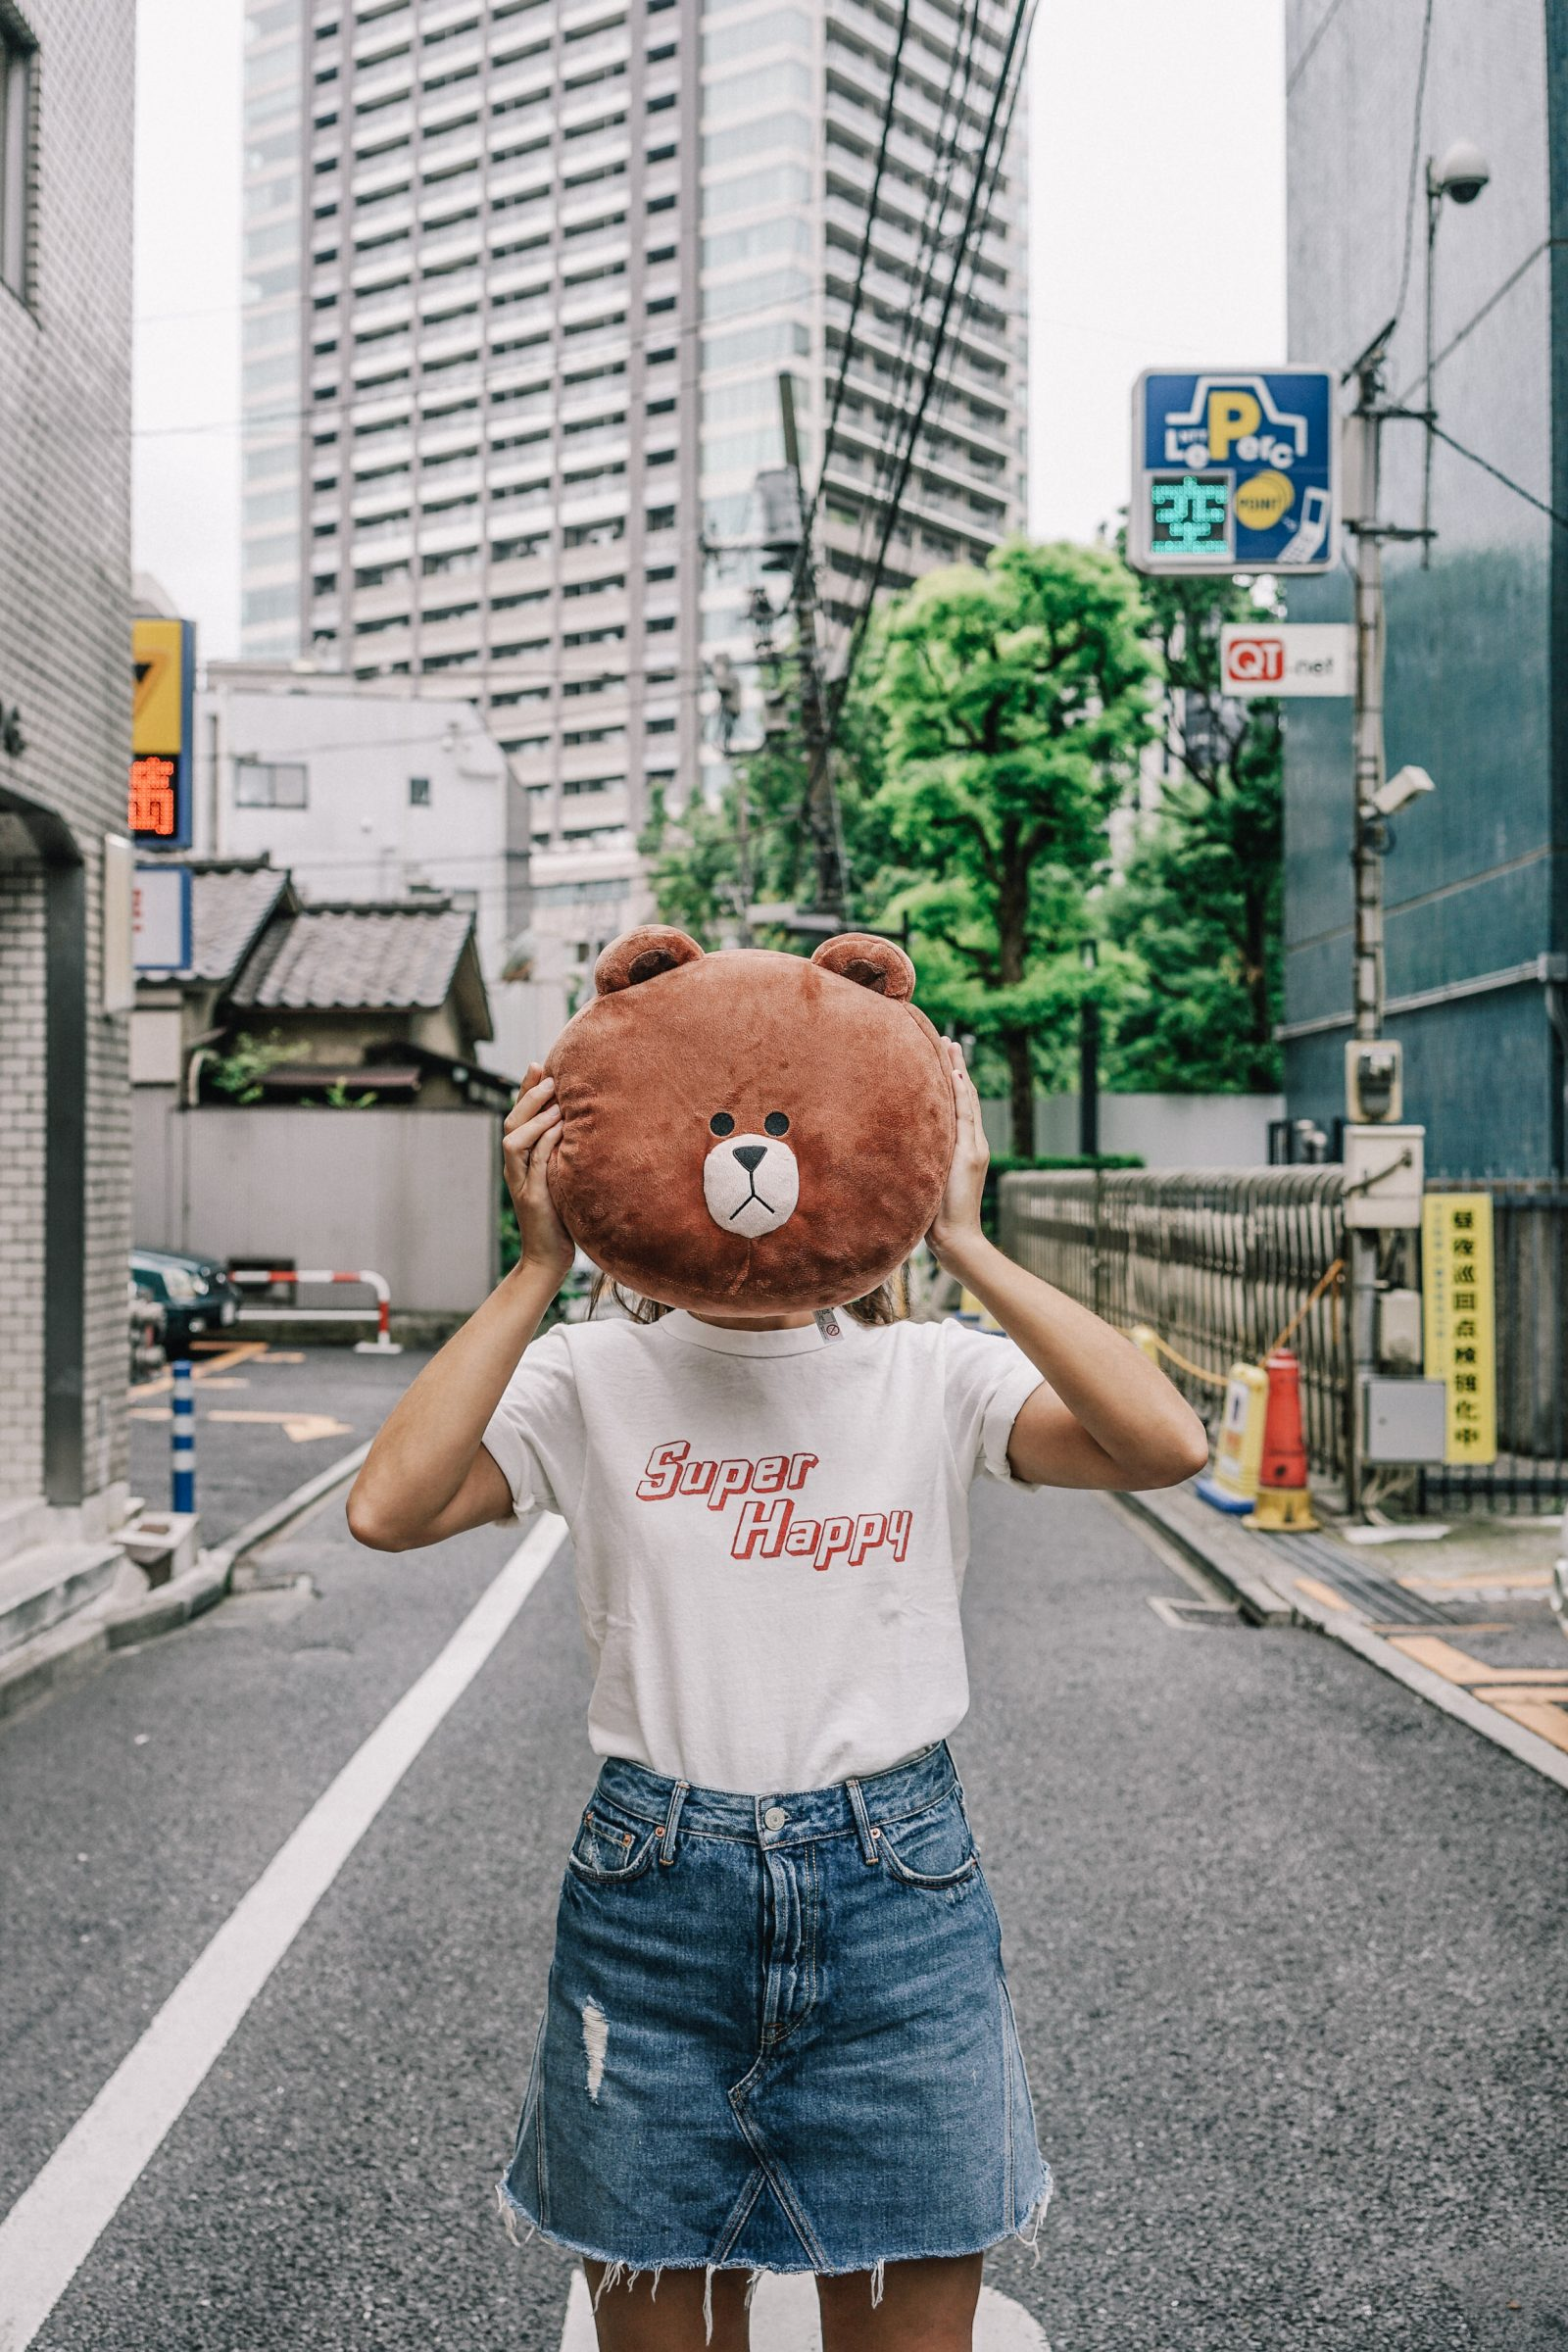 tokyo_travel_guide-outfit-collage_vintage-street_style-super_happy_top-line_friends-levis_vintage-tokyo_shopping-11